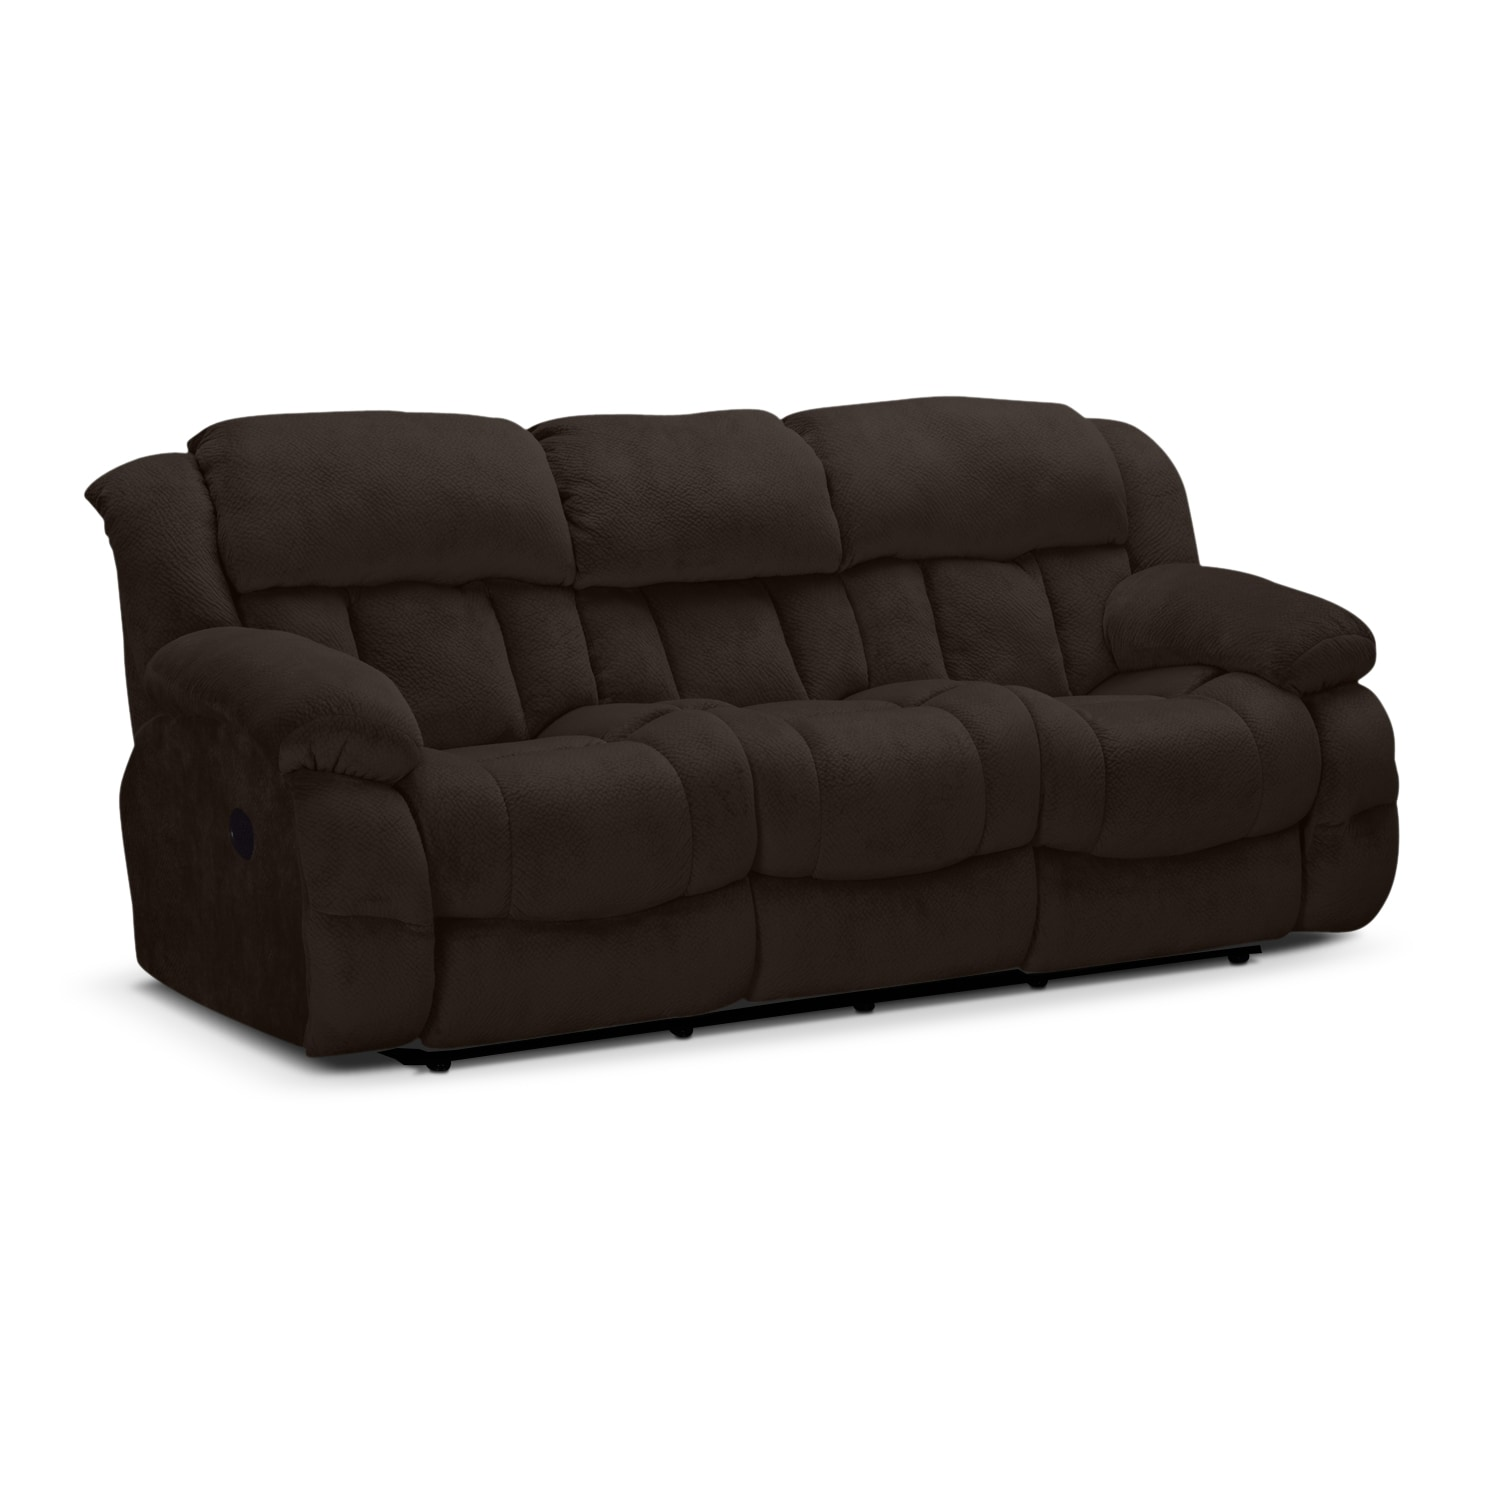 Park City Dual Reclining Sofa Chocolate